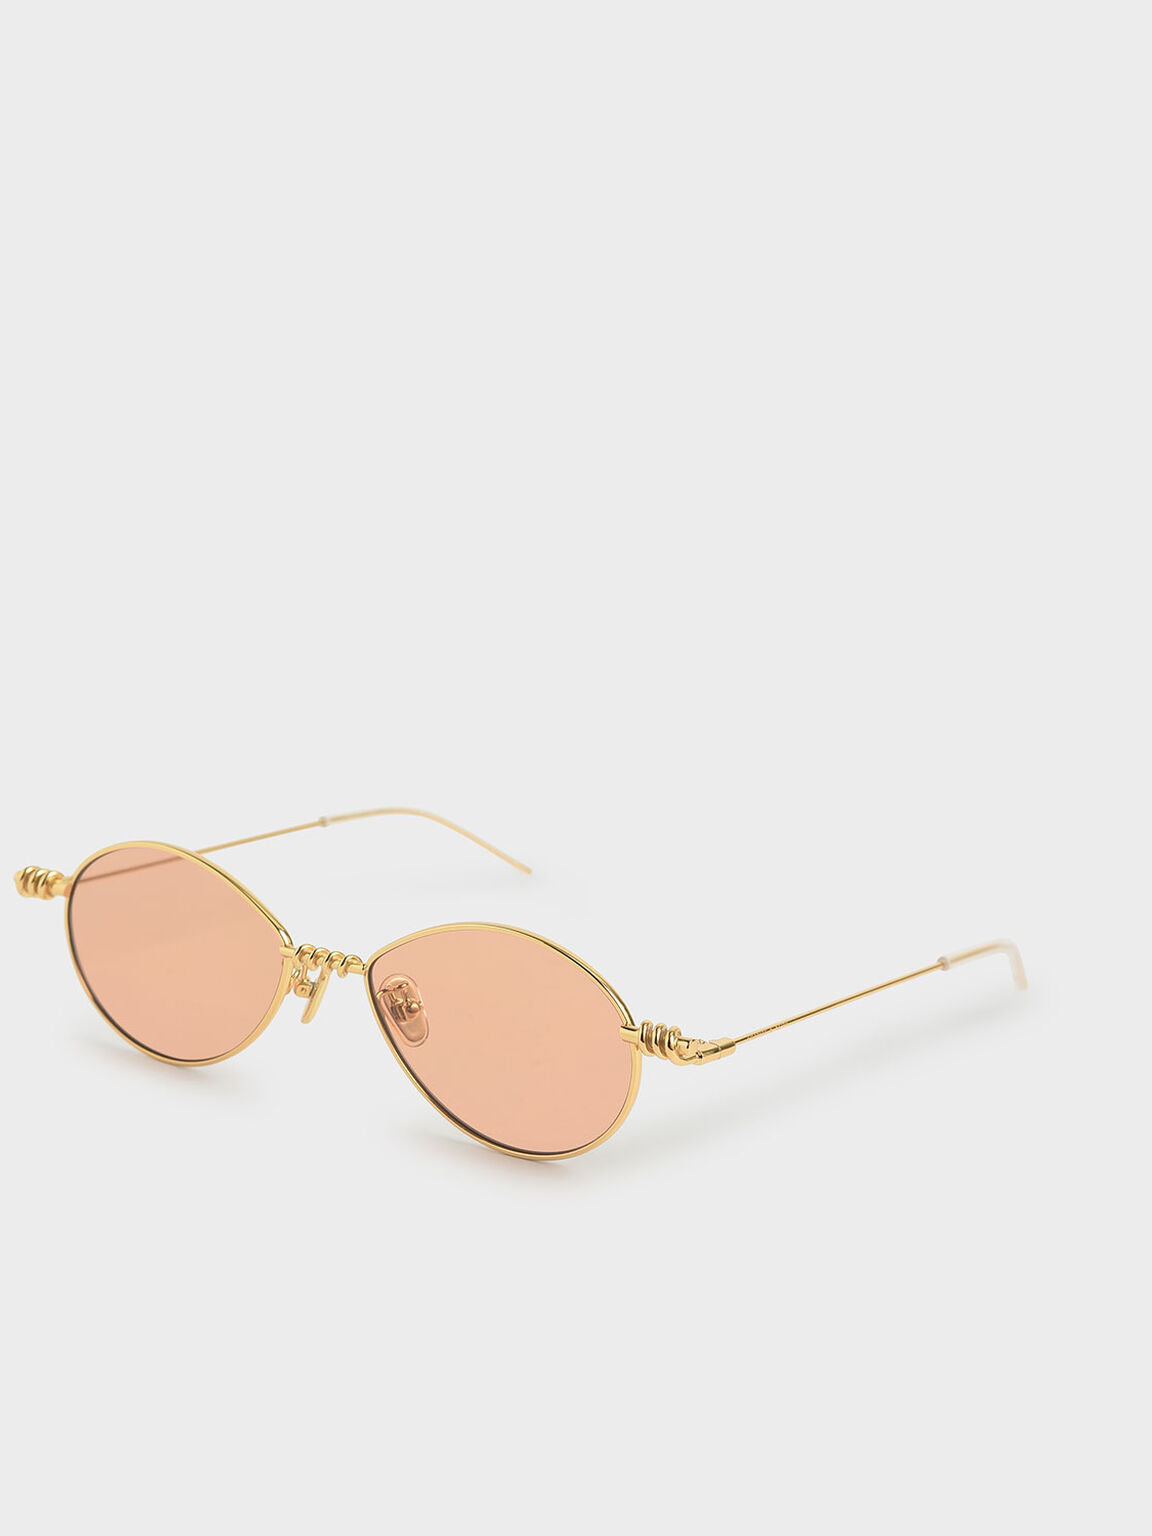 Twine Detail Oval Sunglasses, Orange, hi-res